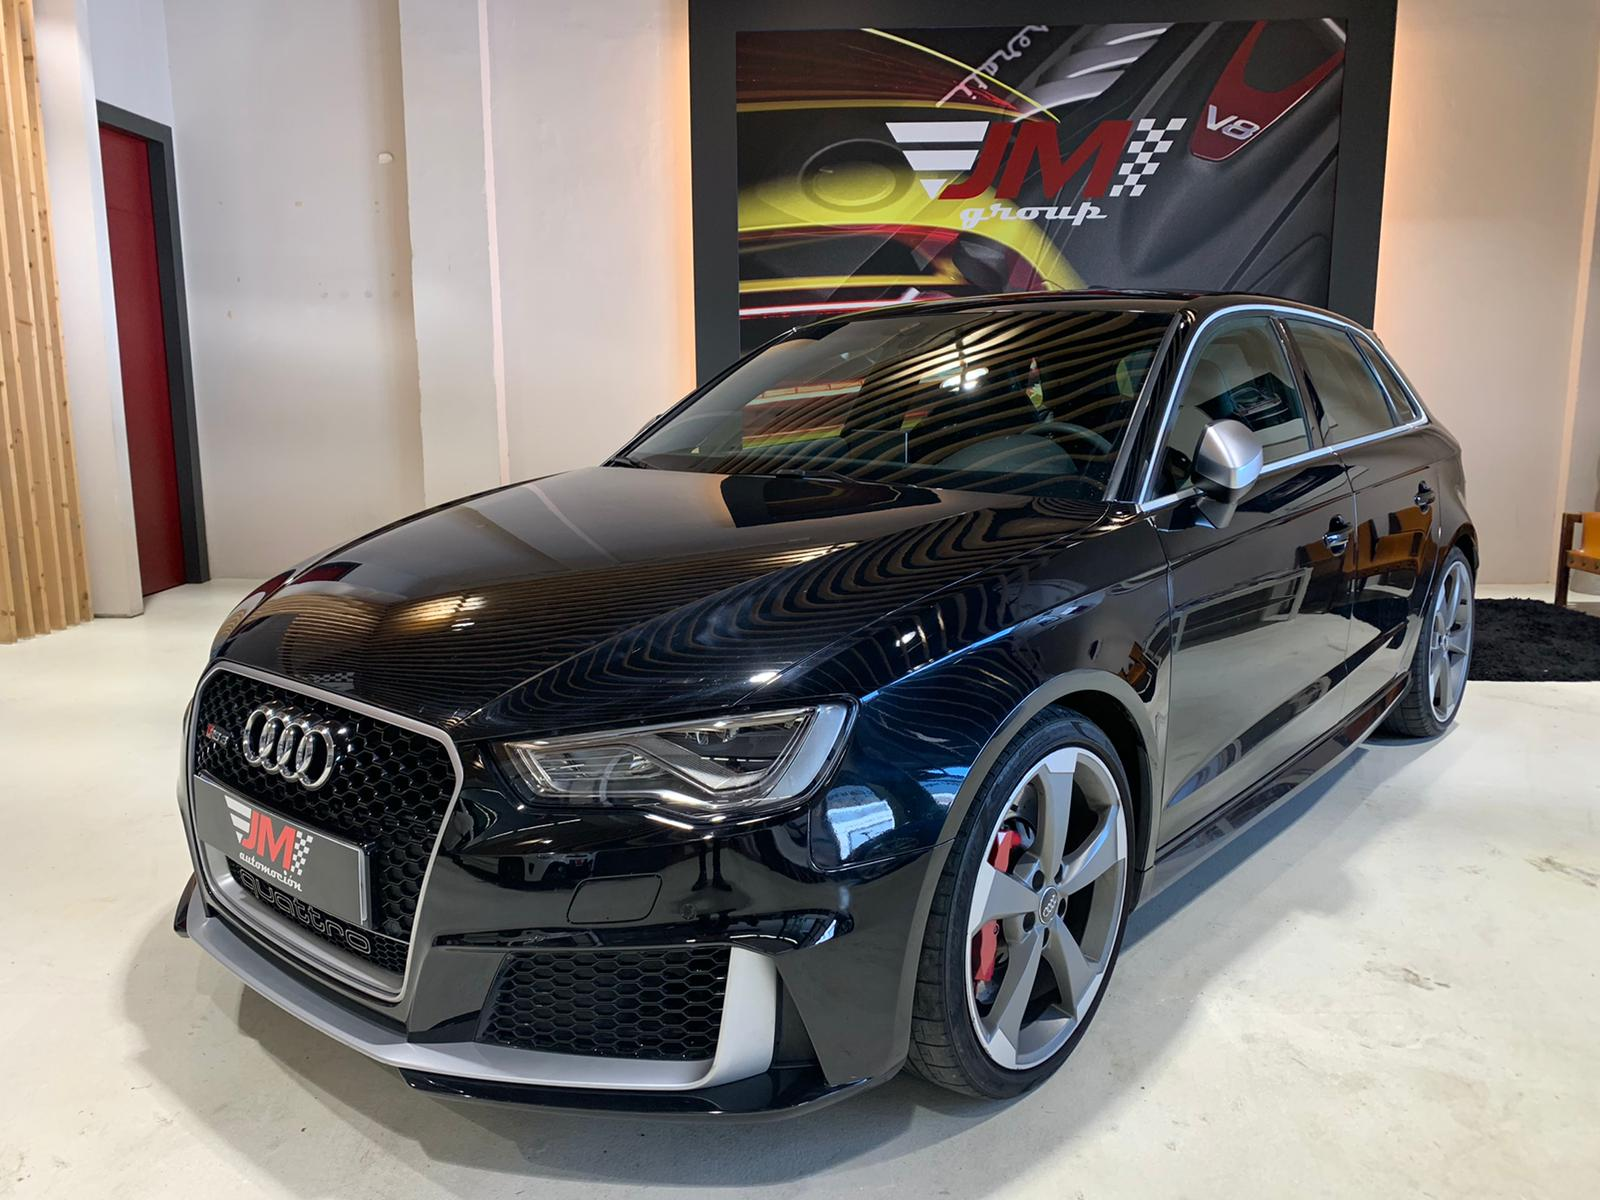 AUDI RS3 SPORTBACK --NACIONAL, IVA DEDUCIBLE--